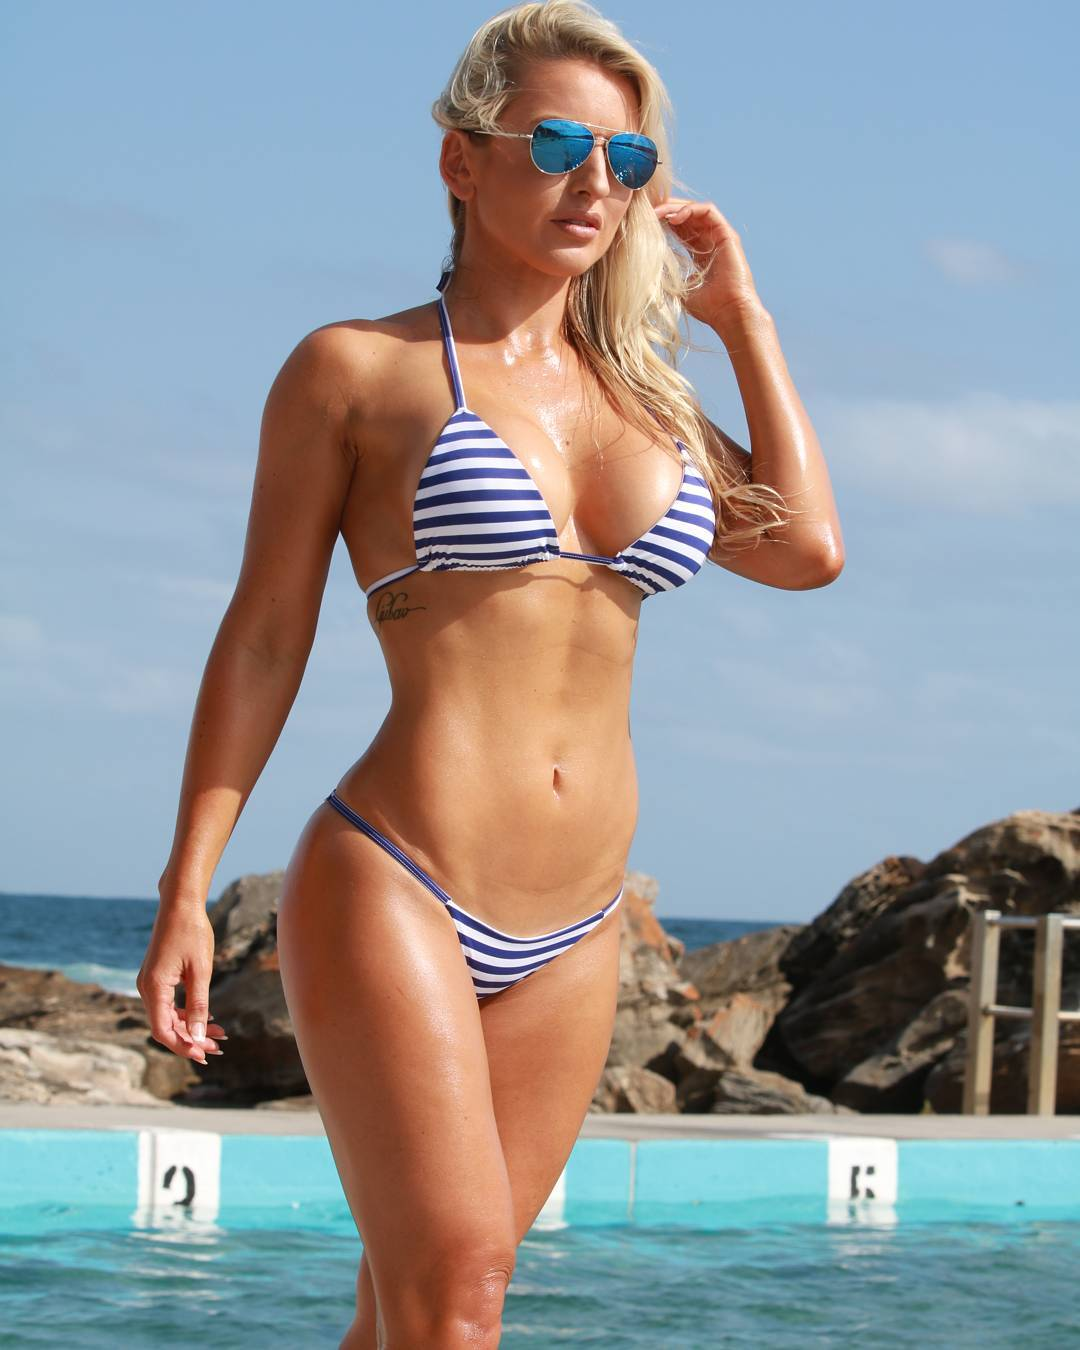 busty blonde fitness model Marijana Stojic in a sexy striped bikini